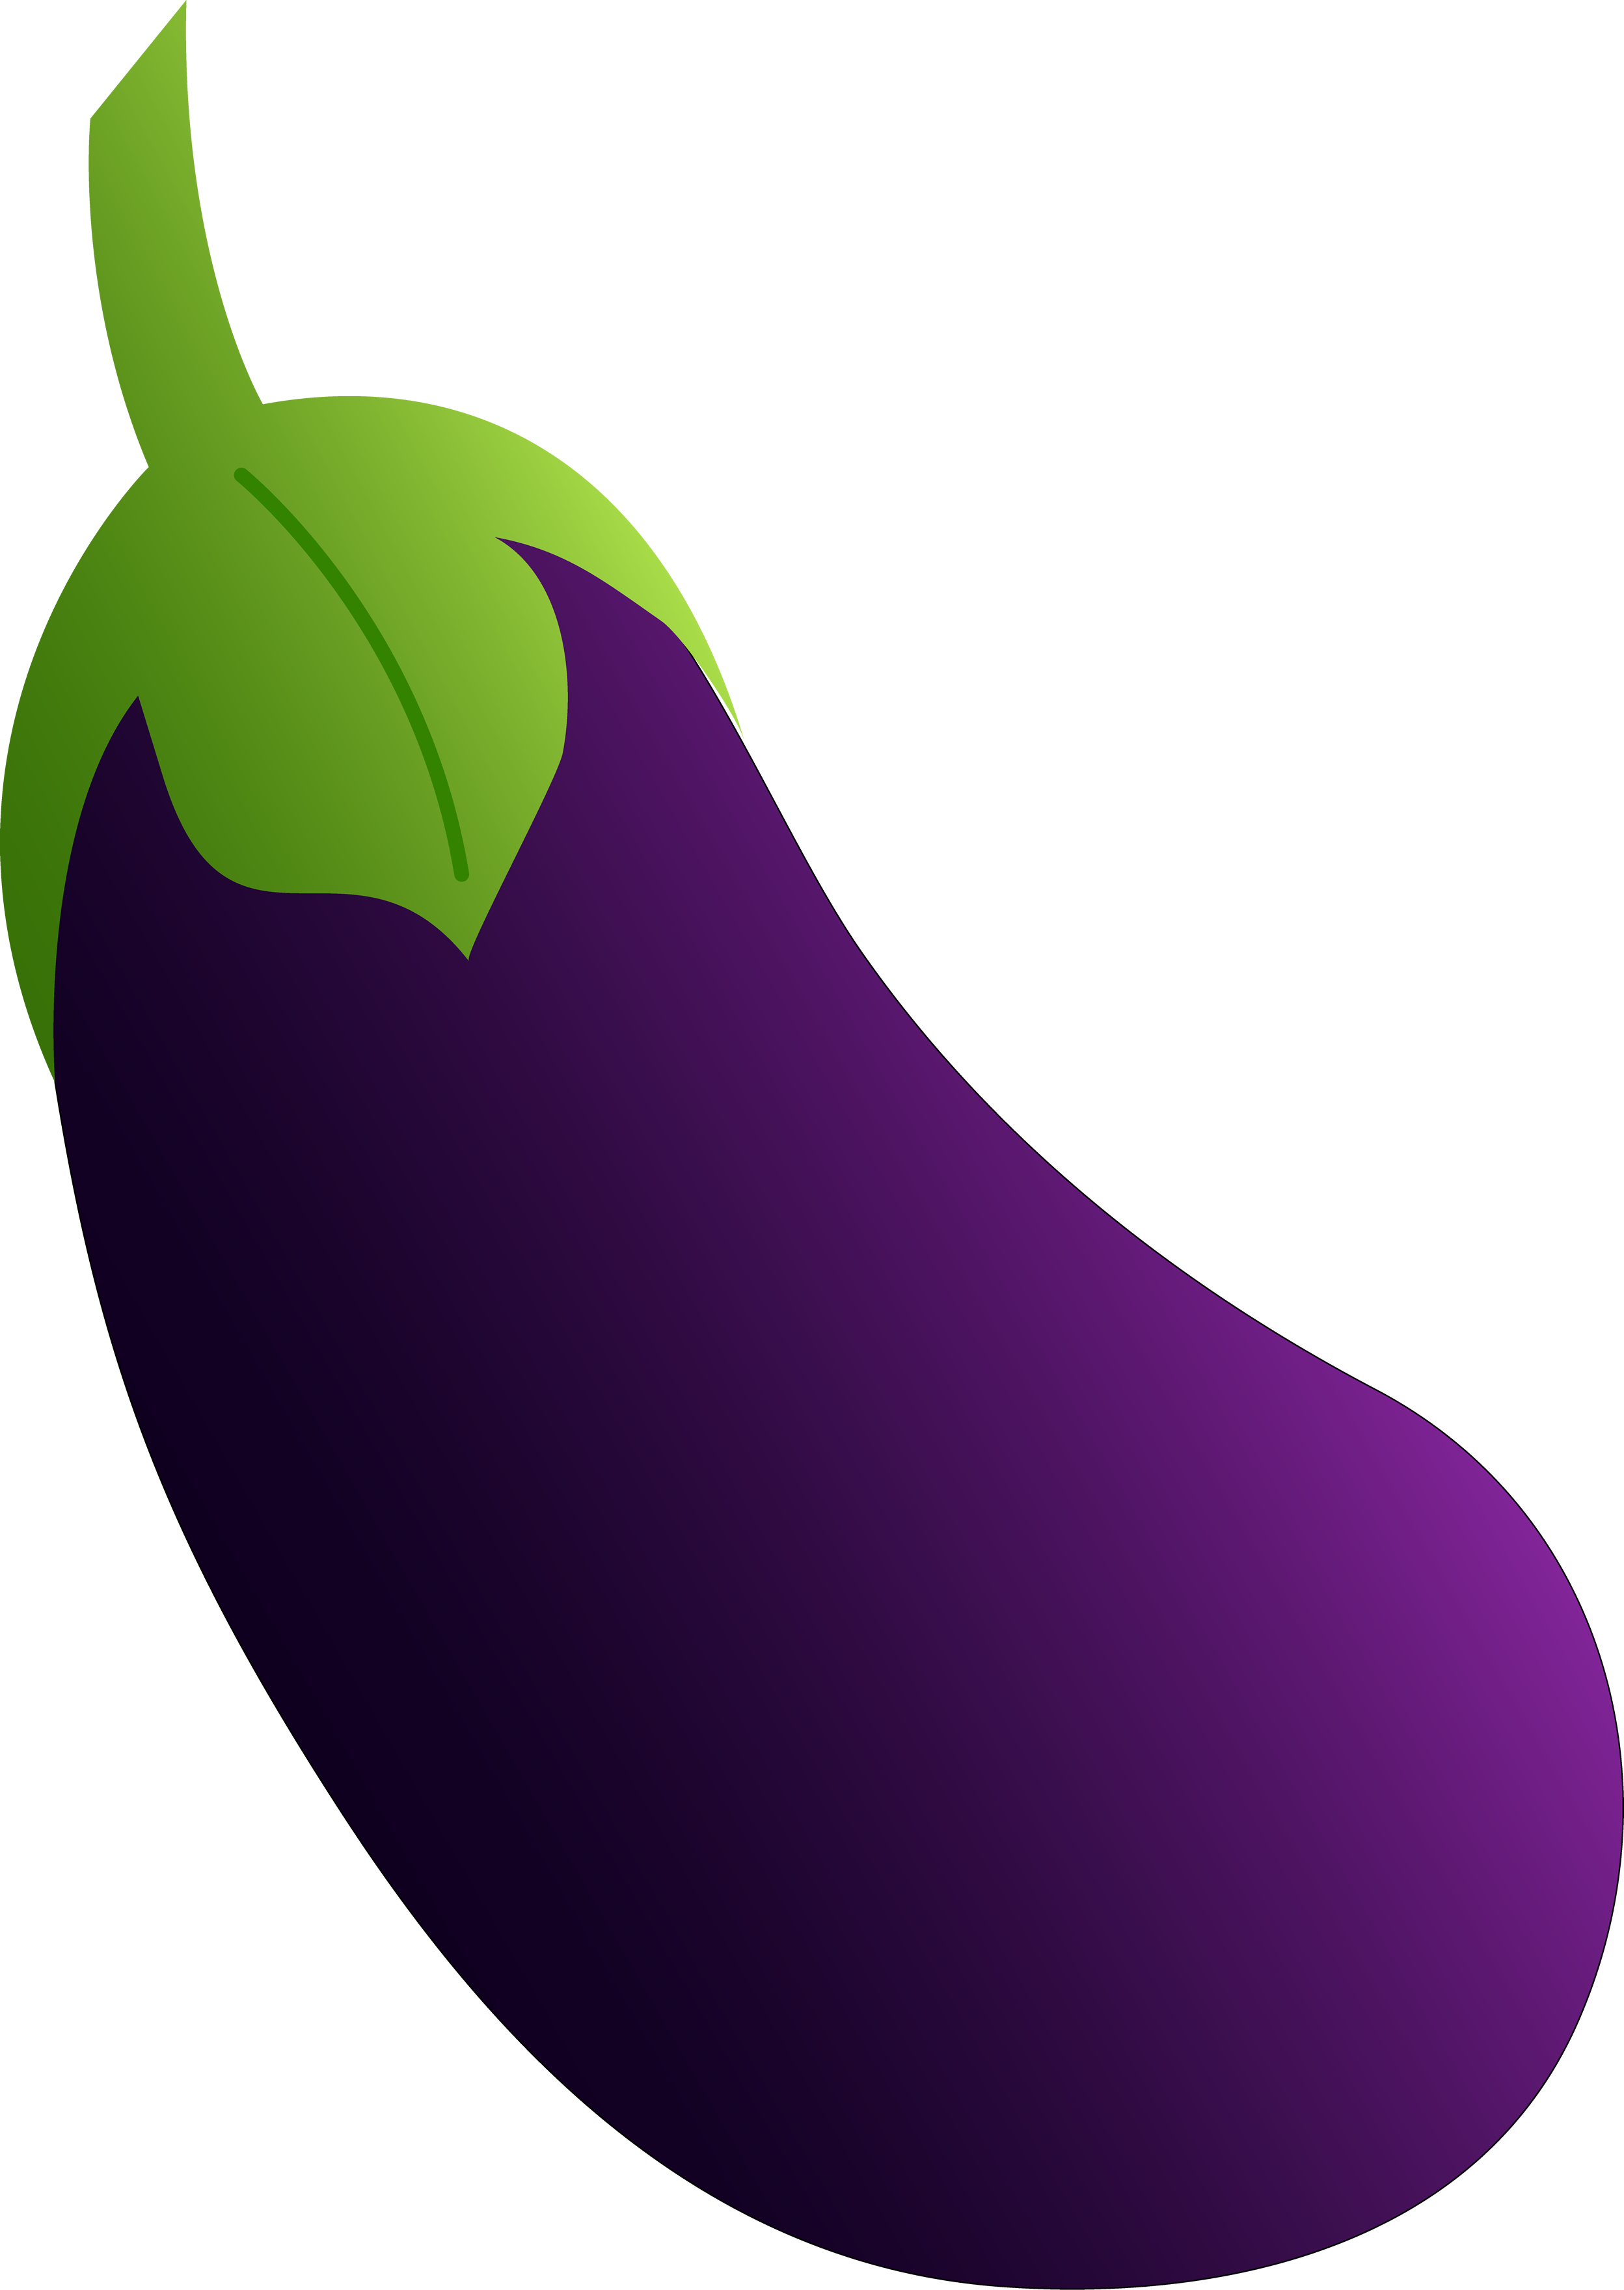 High Resolution Eggplant Png Clipart